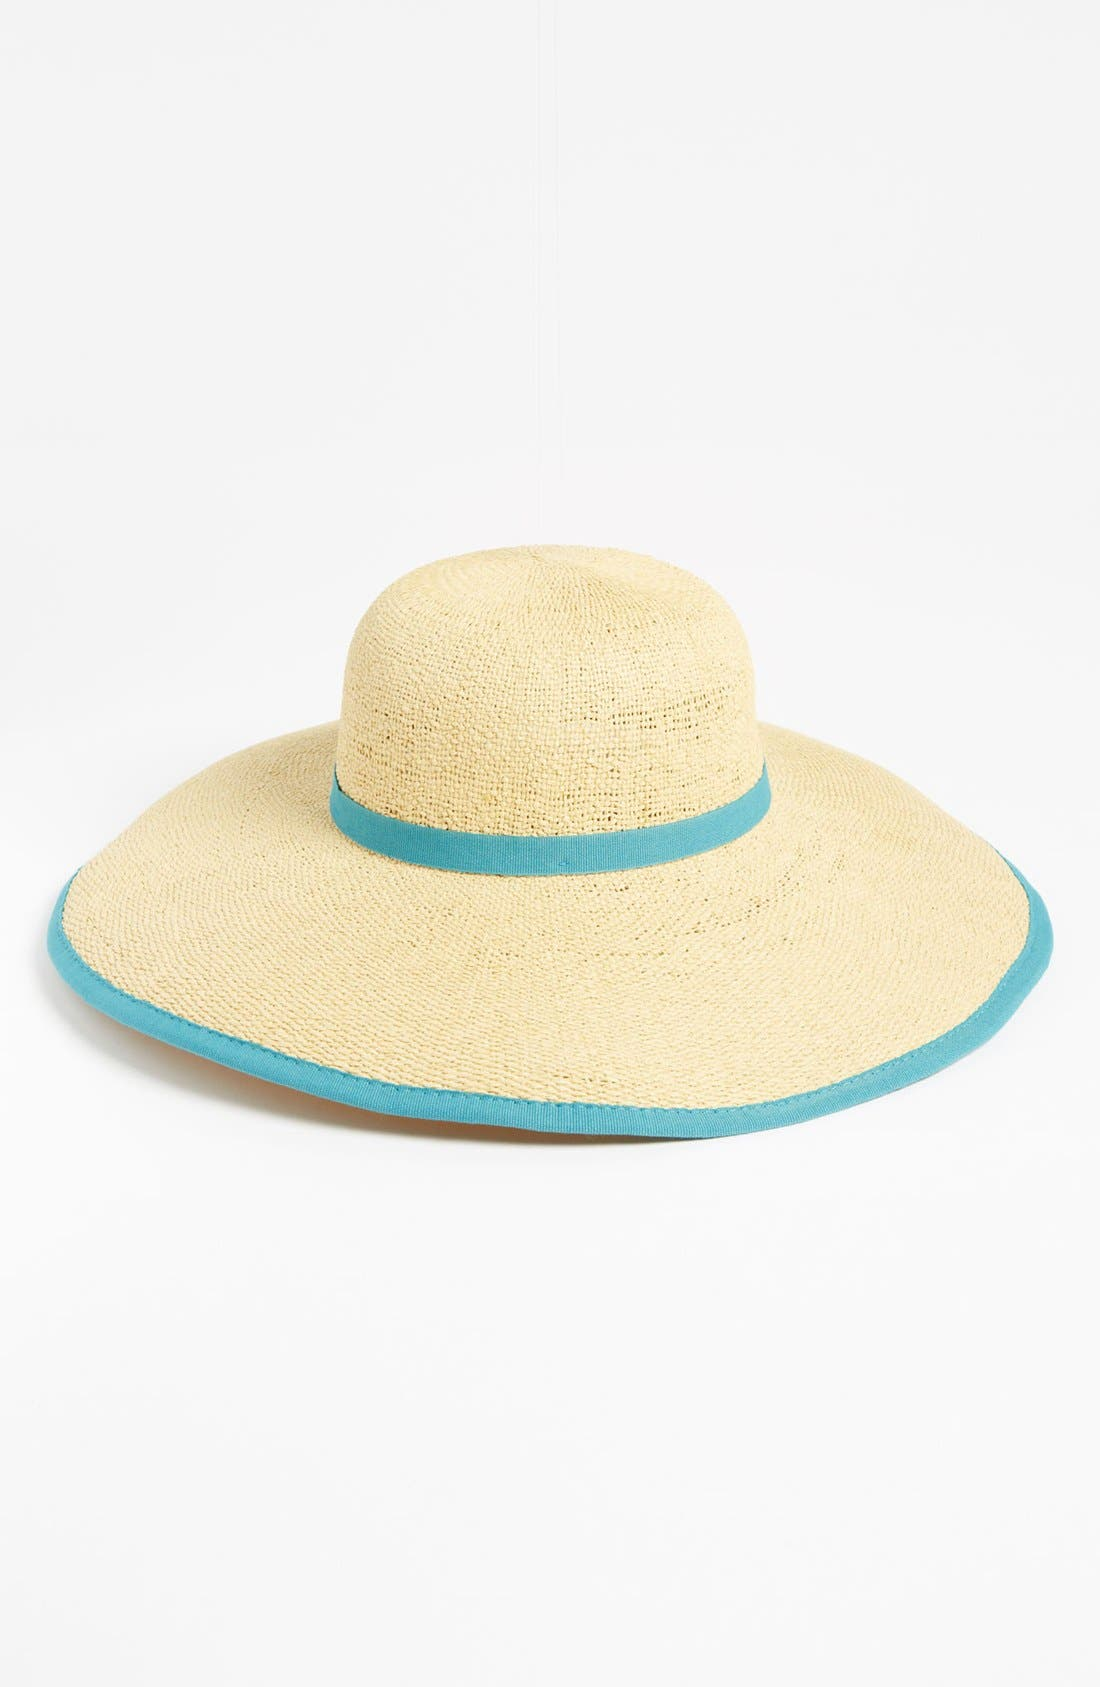 Alternate Image 1 Selected - Nordstrom Wire Brim Sun Hat